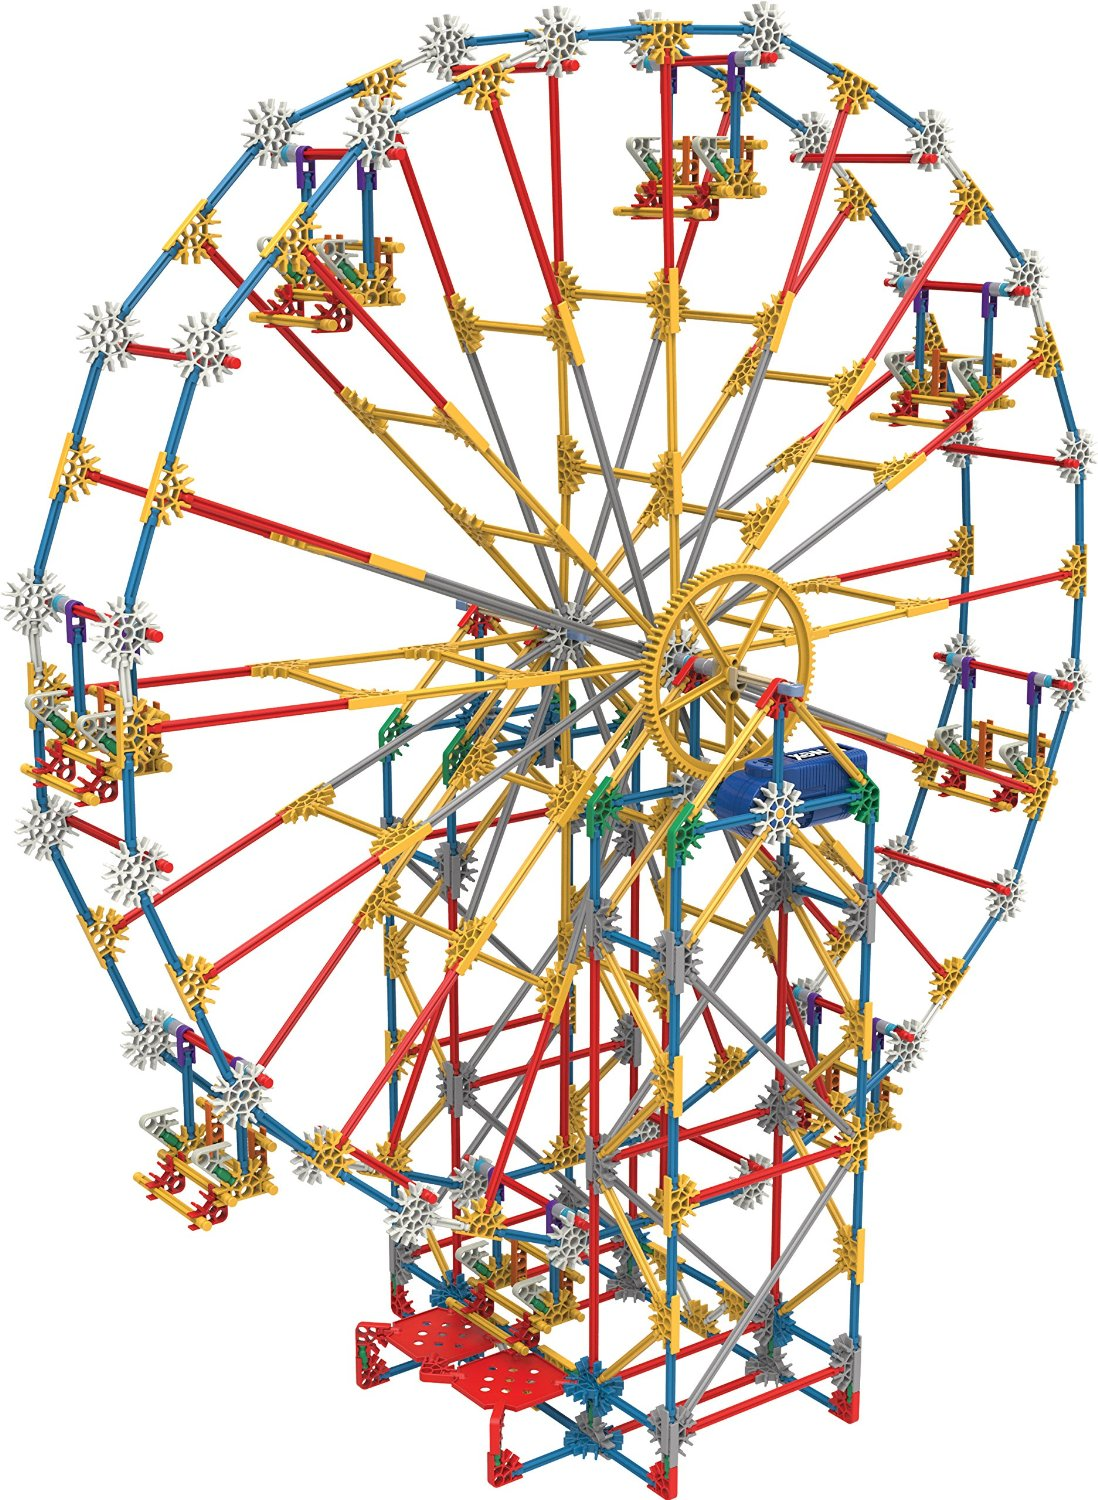 K'NEX Thrill Rides 3-in-1 Classic Amusement Park Building Set: